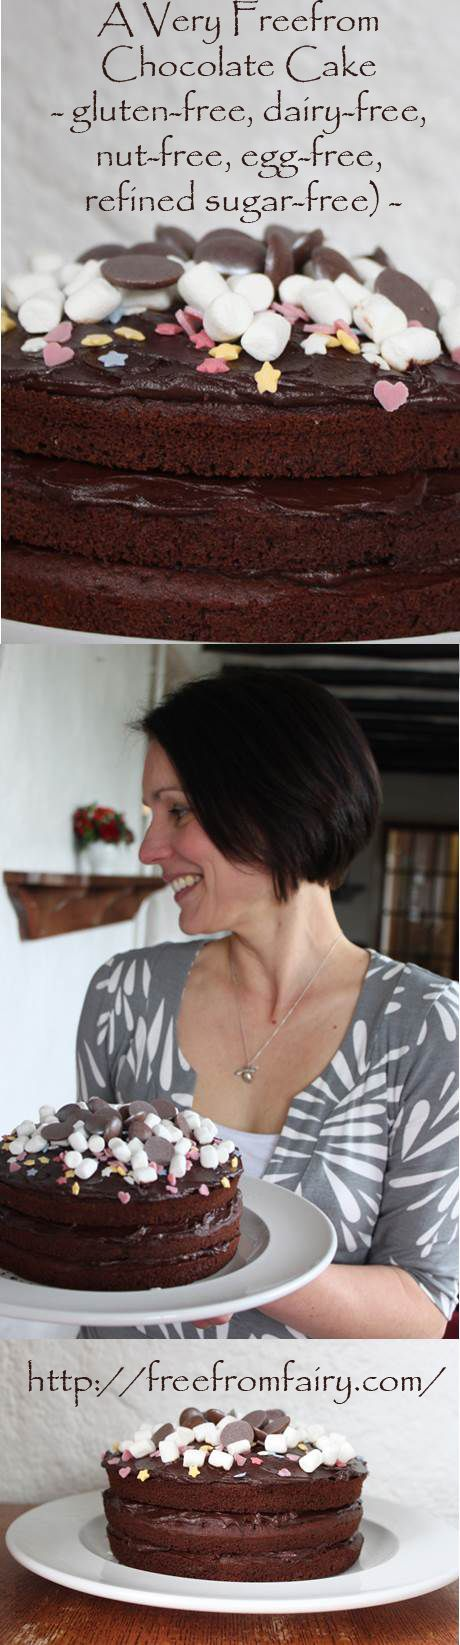 A very freefrom chocolate cake...glutenfree, dairyfree, eggfree, nutfree, soyafree, refined sugar free!